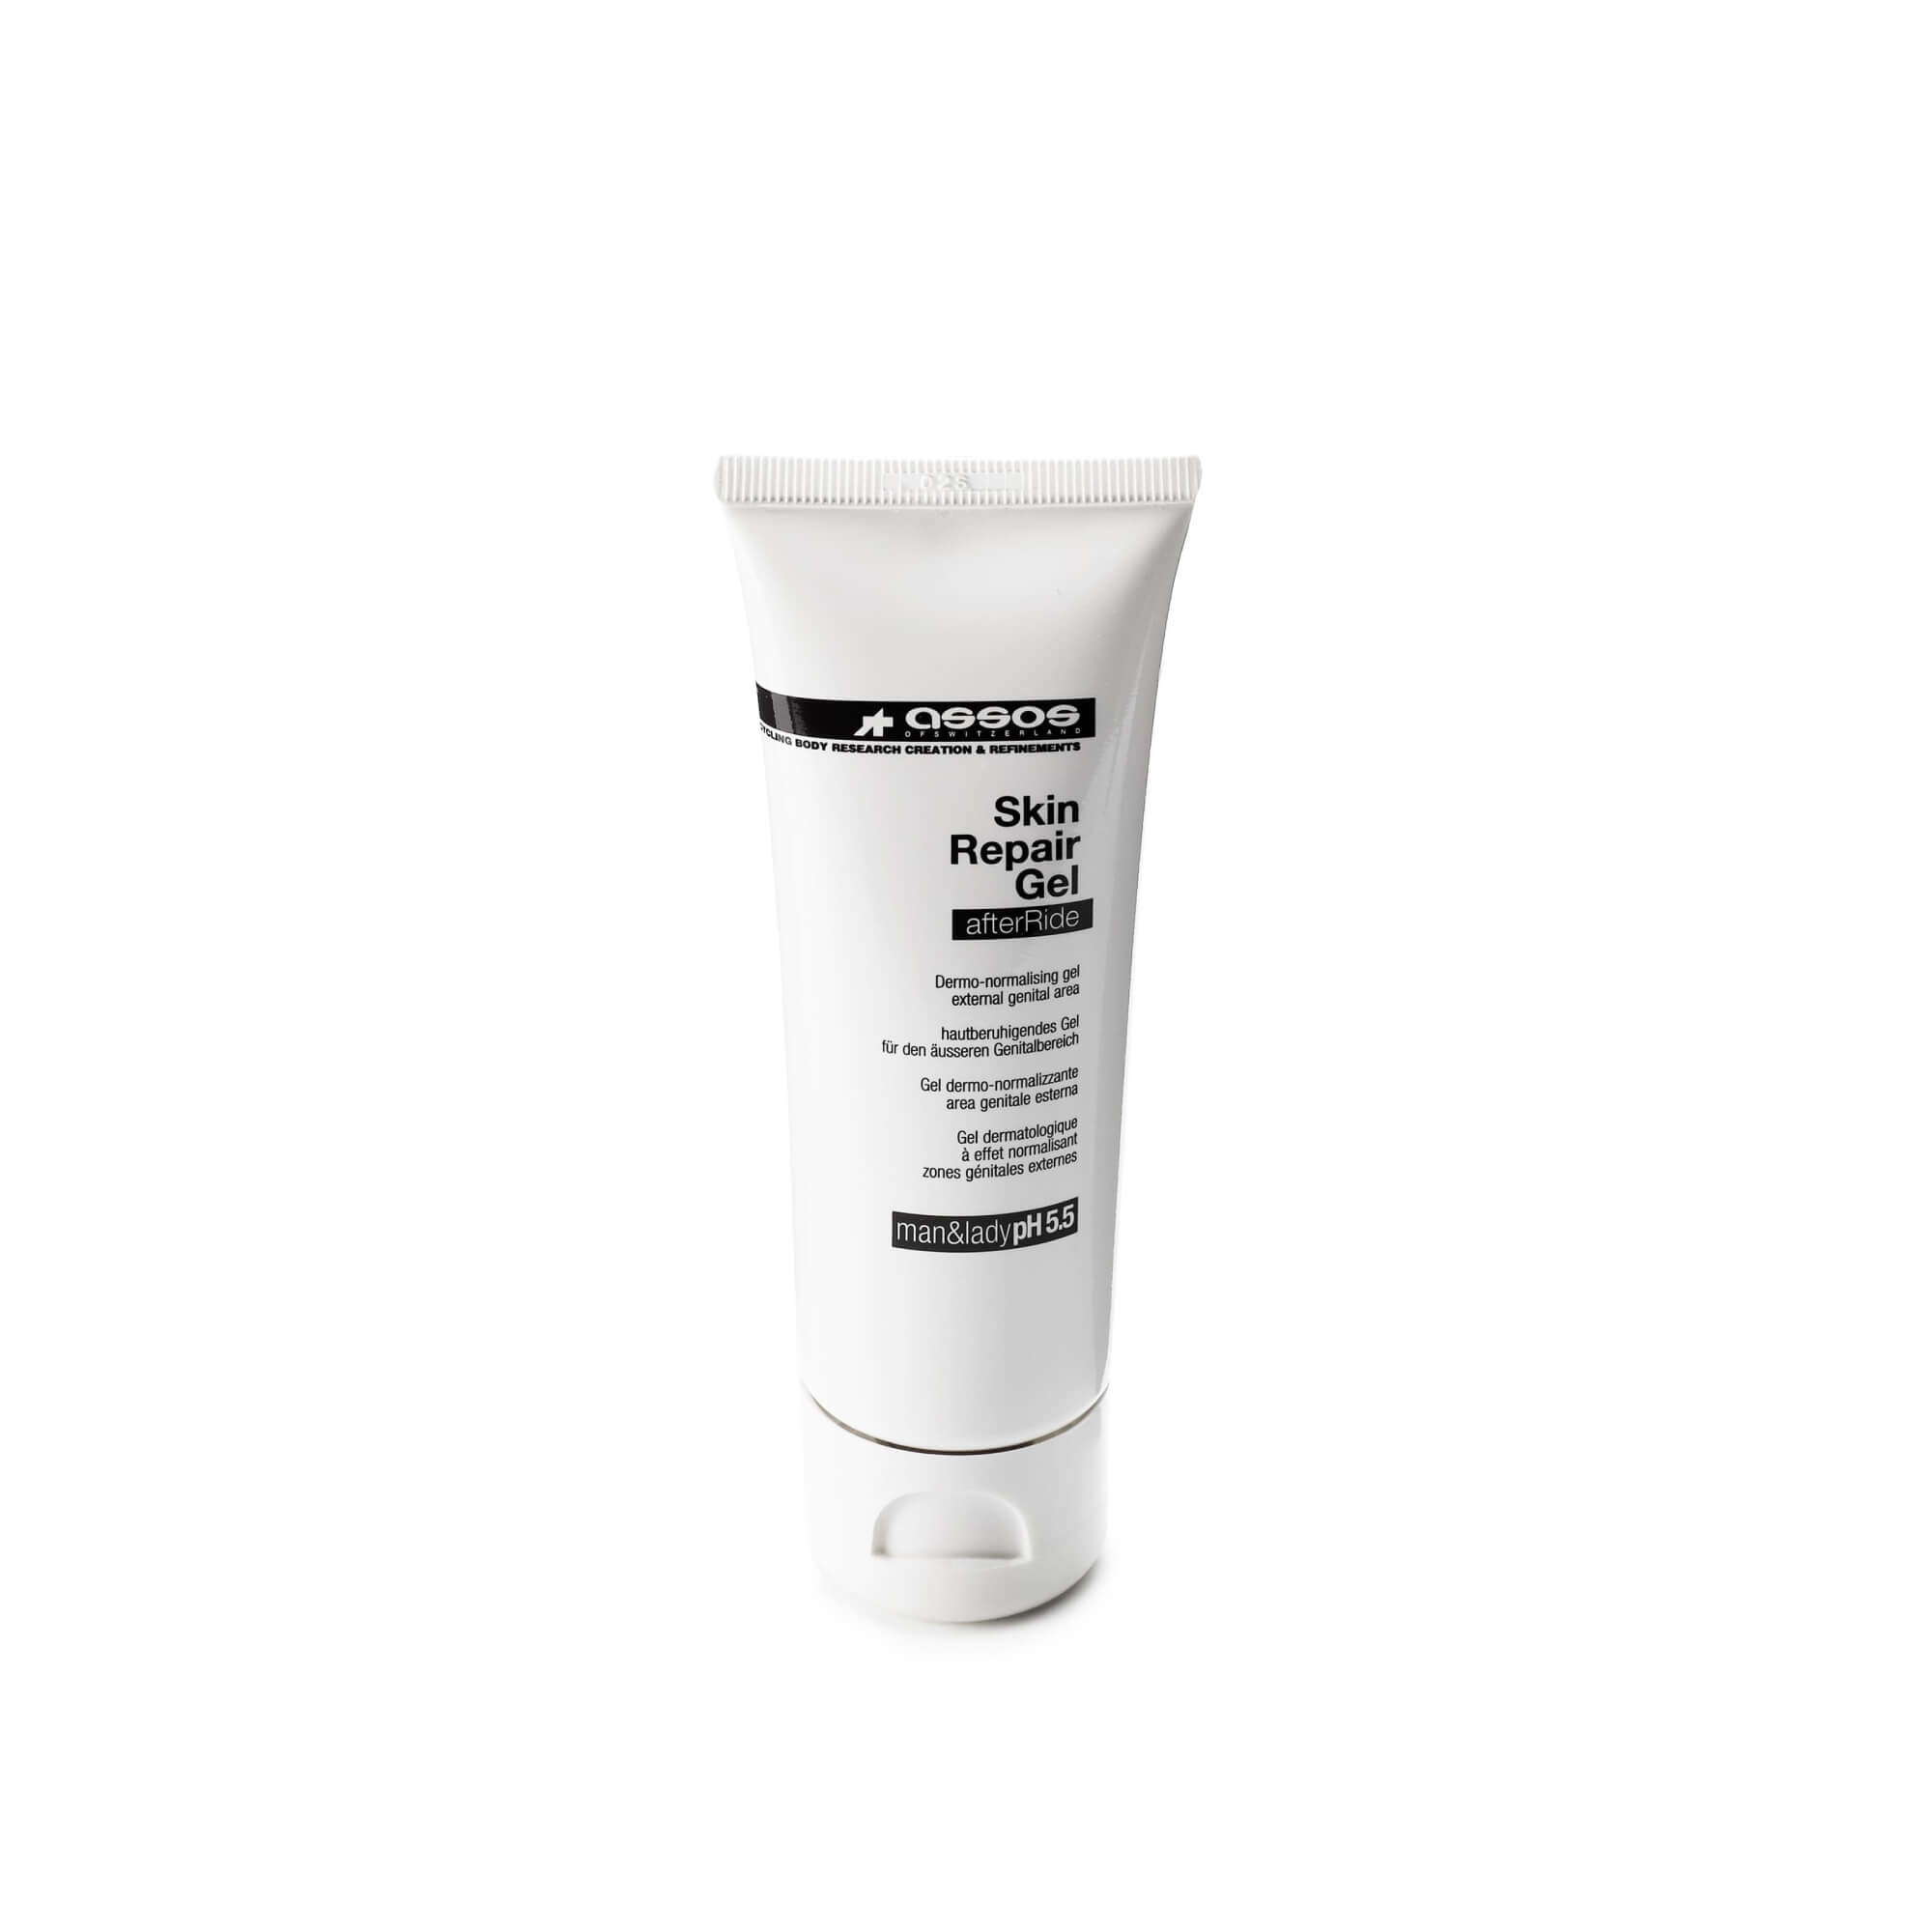 Skin Repair Gel Single Unit 75 ml-1